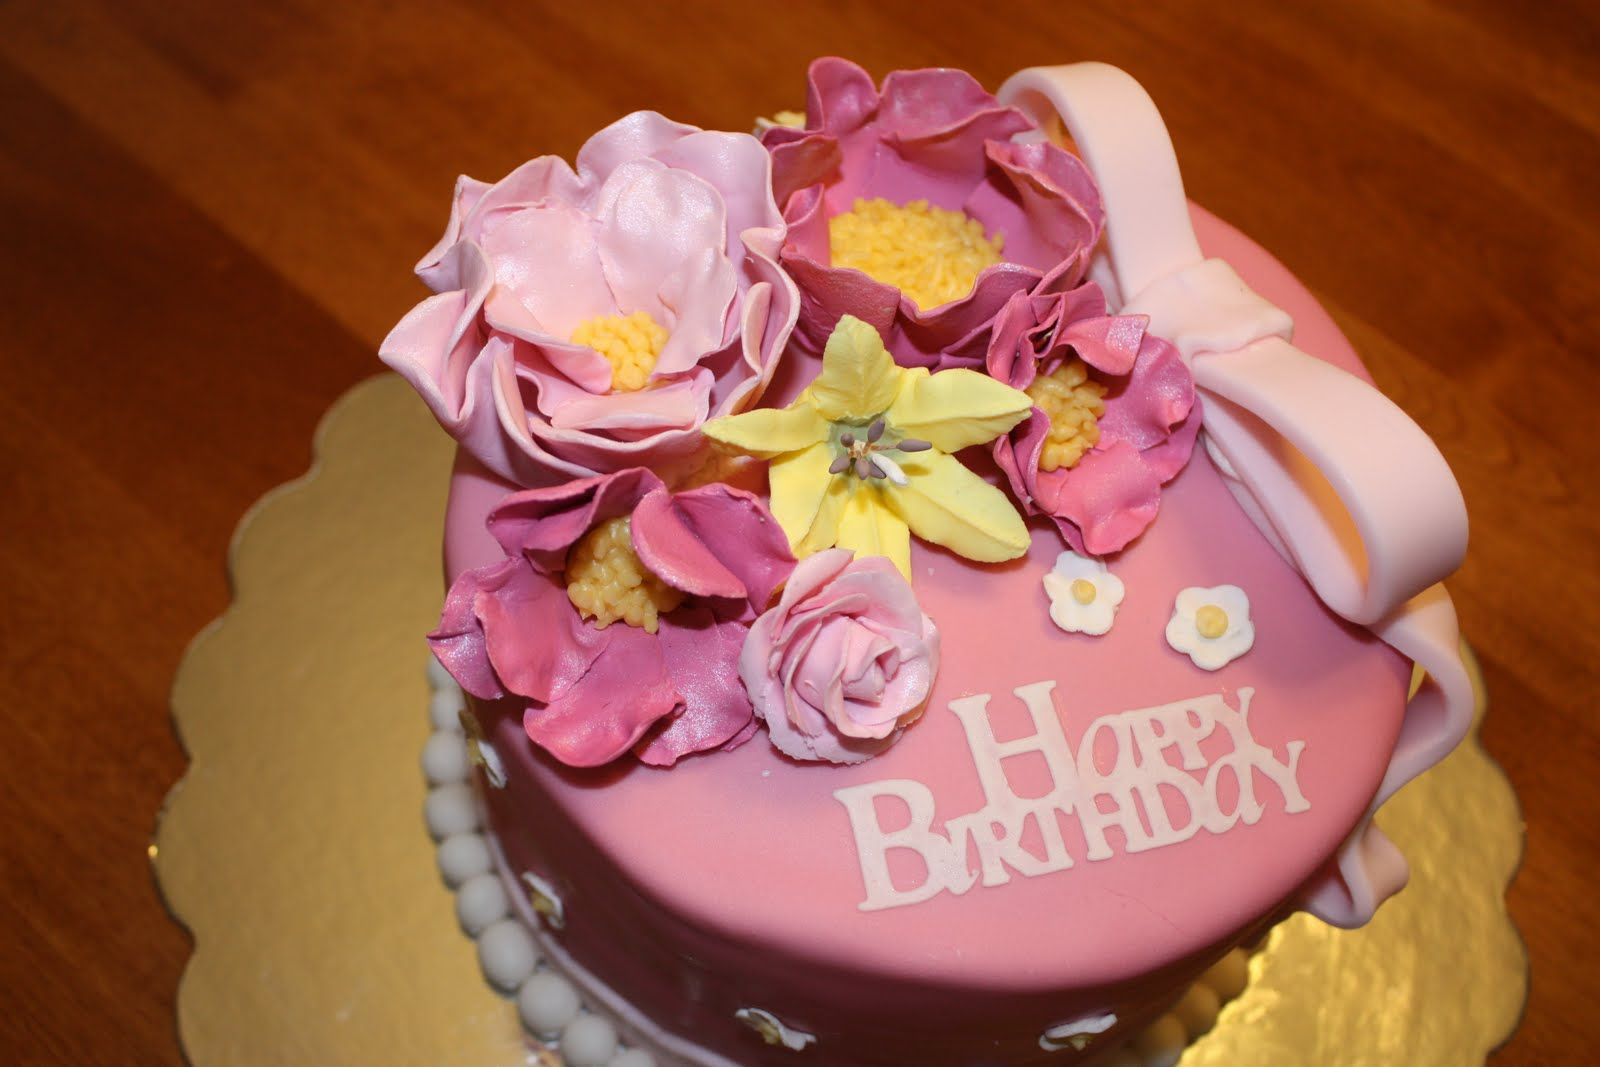 1600 1067 In 30 Brilliant Picture Of Birthday Cake With Flowers Happy And Flower For The